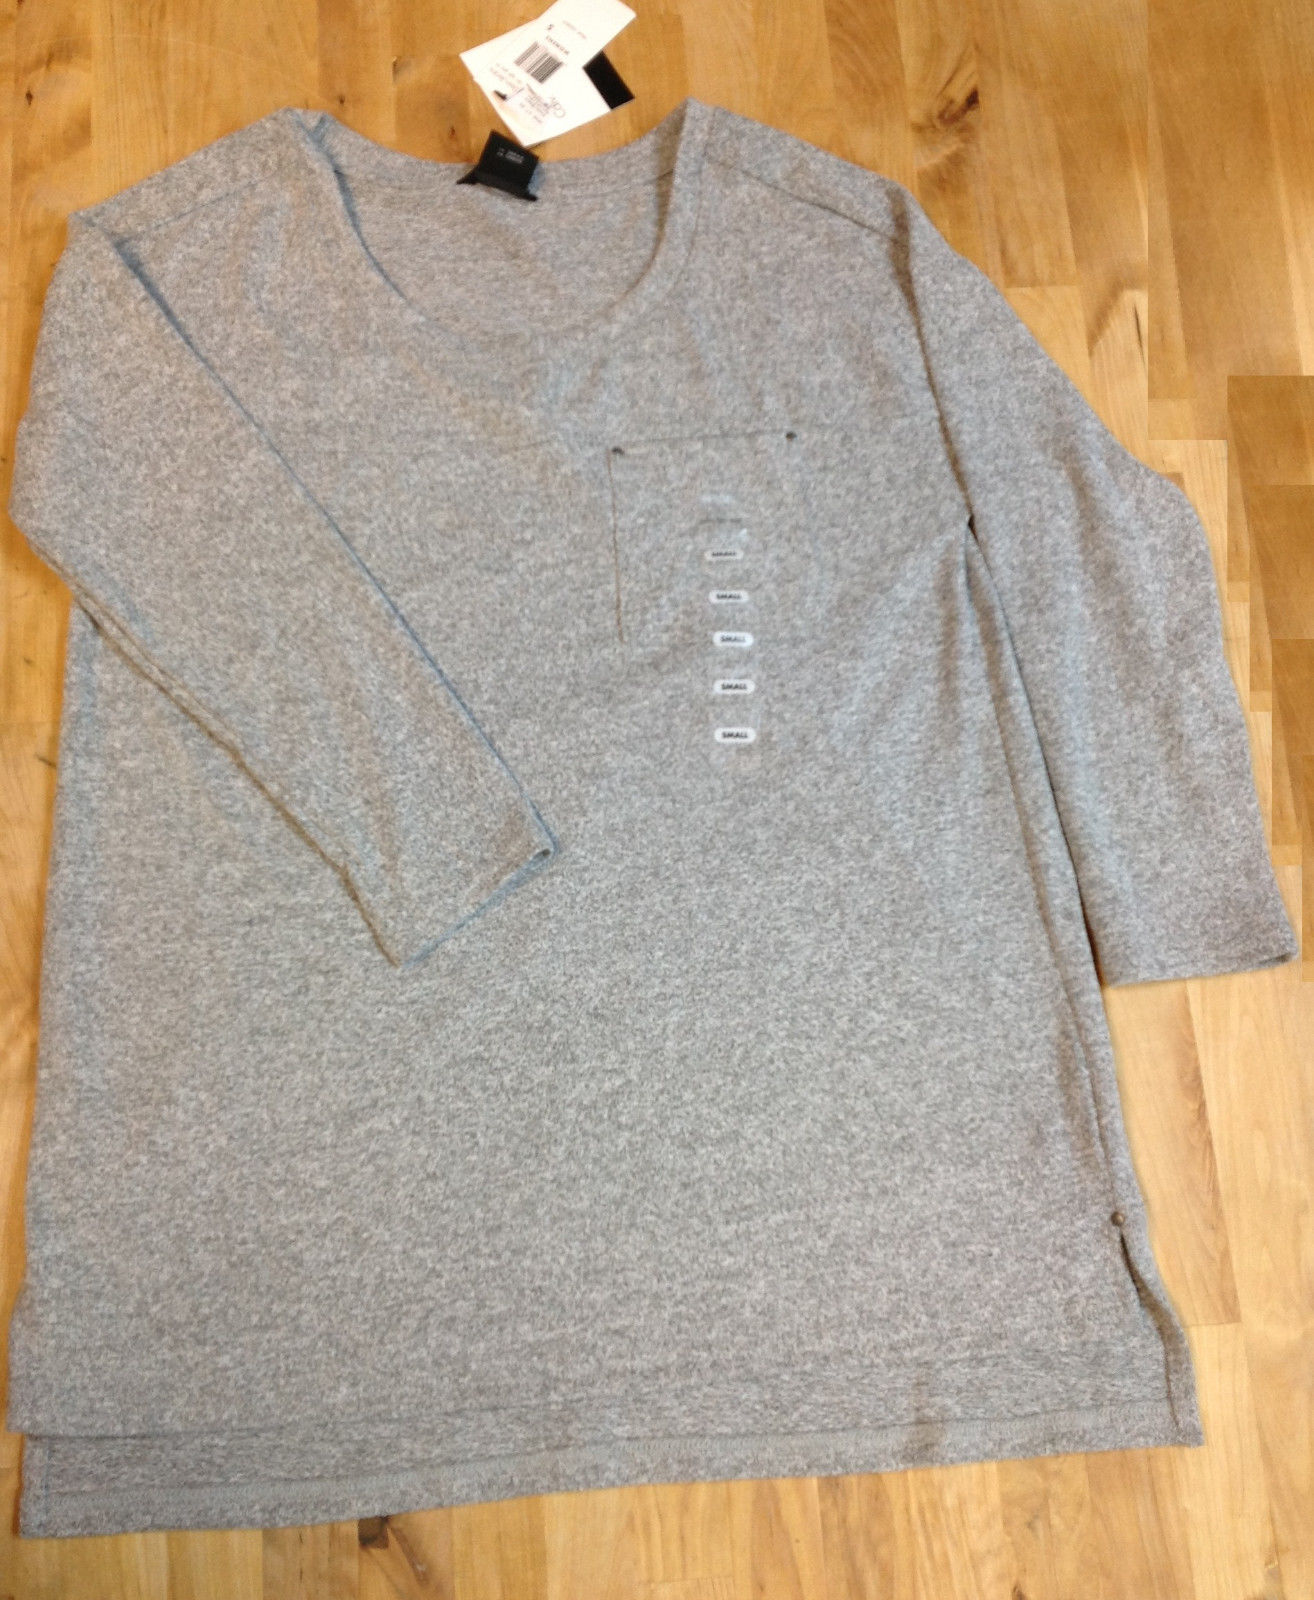 Calvin Klein Women Shirts, Light Gray Heather, Size S